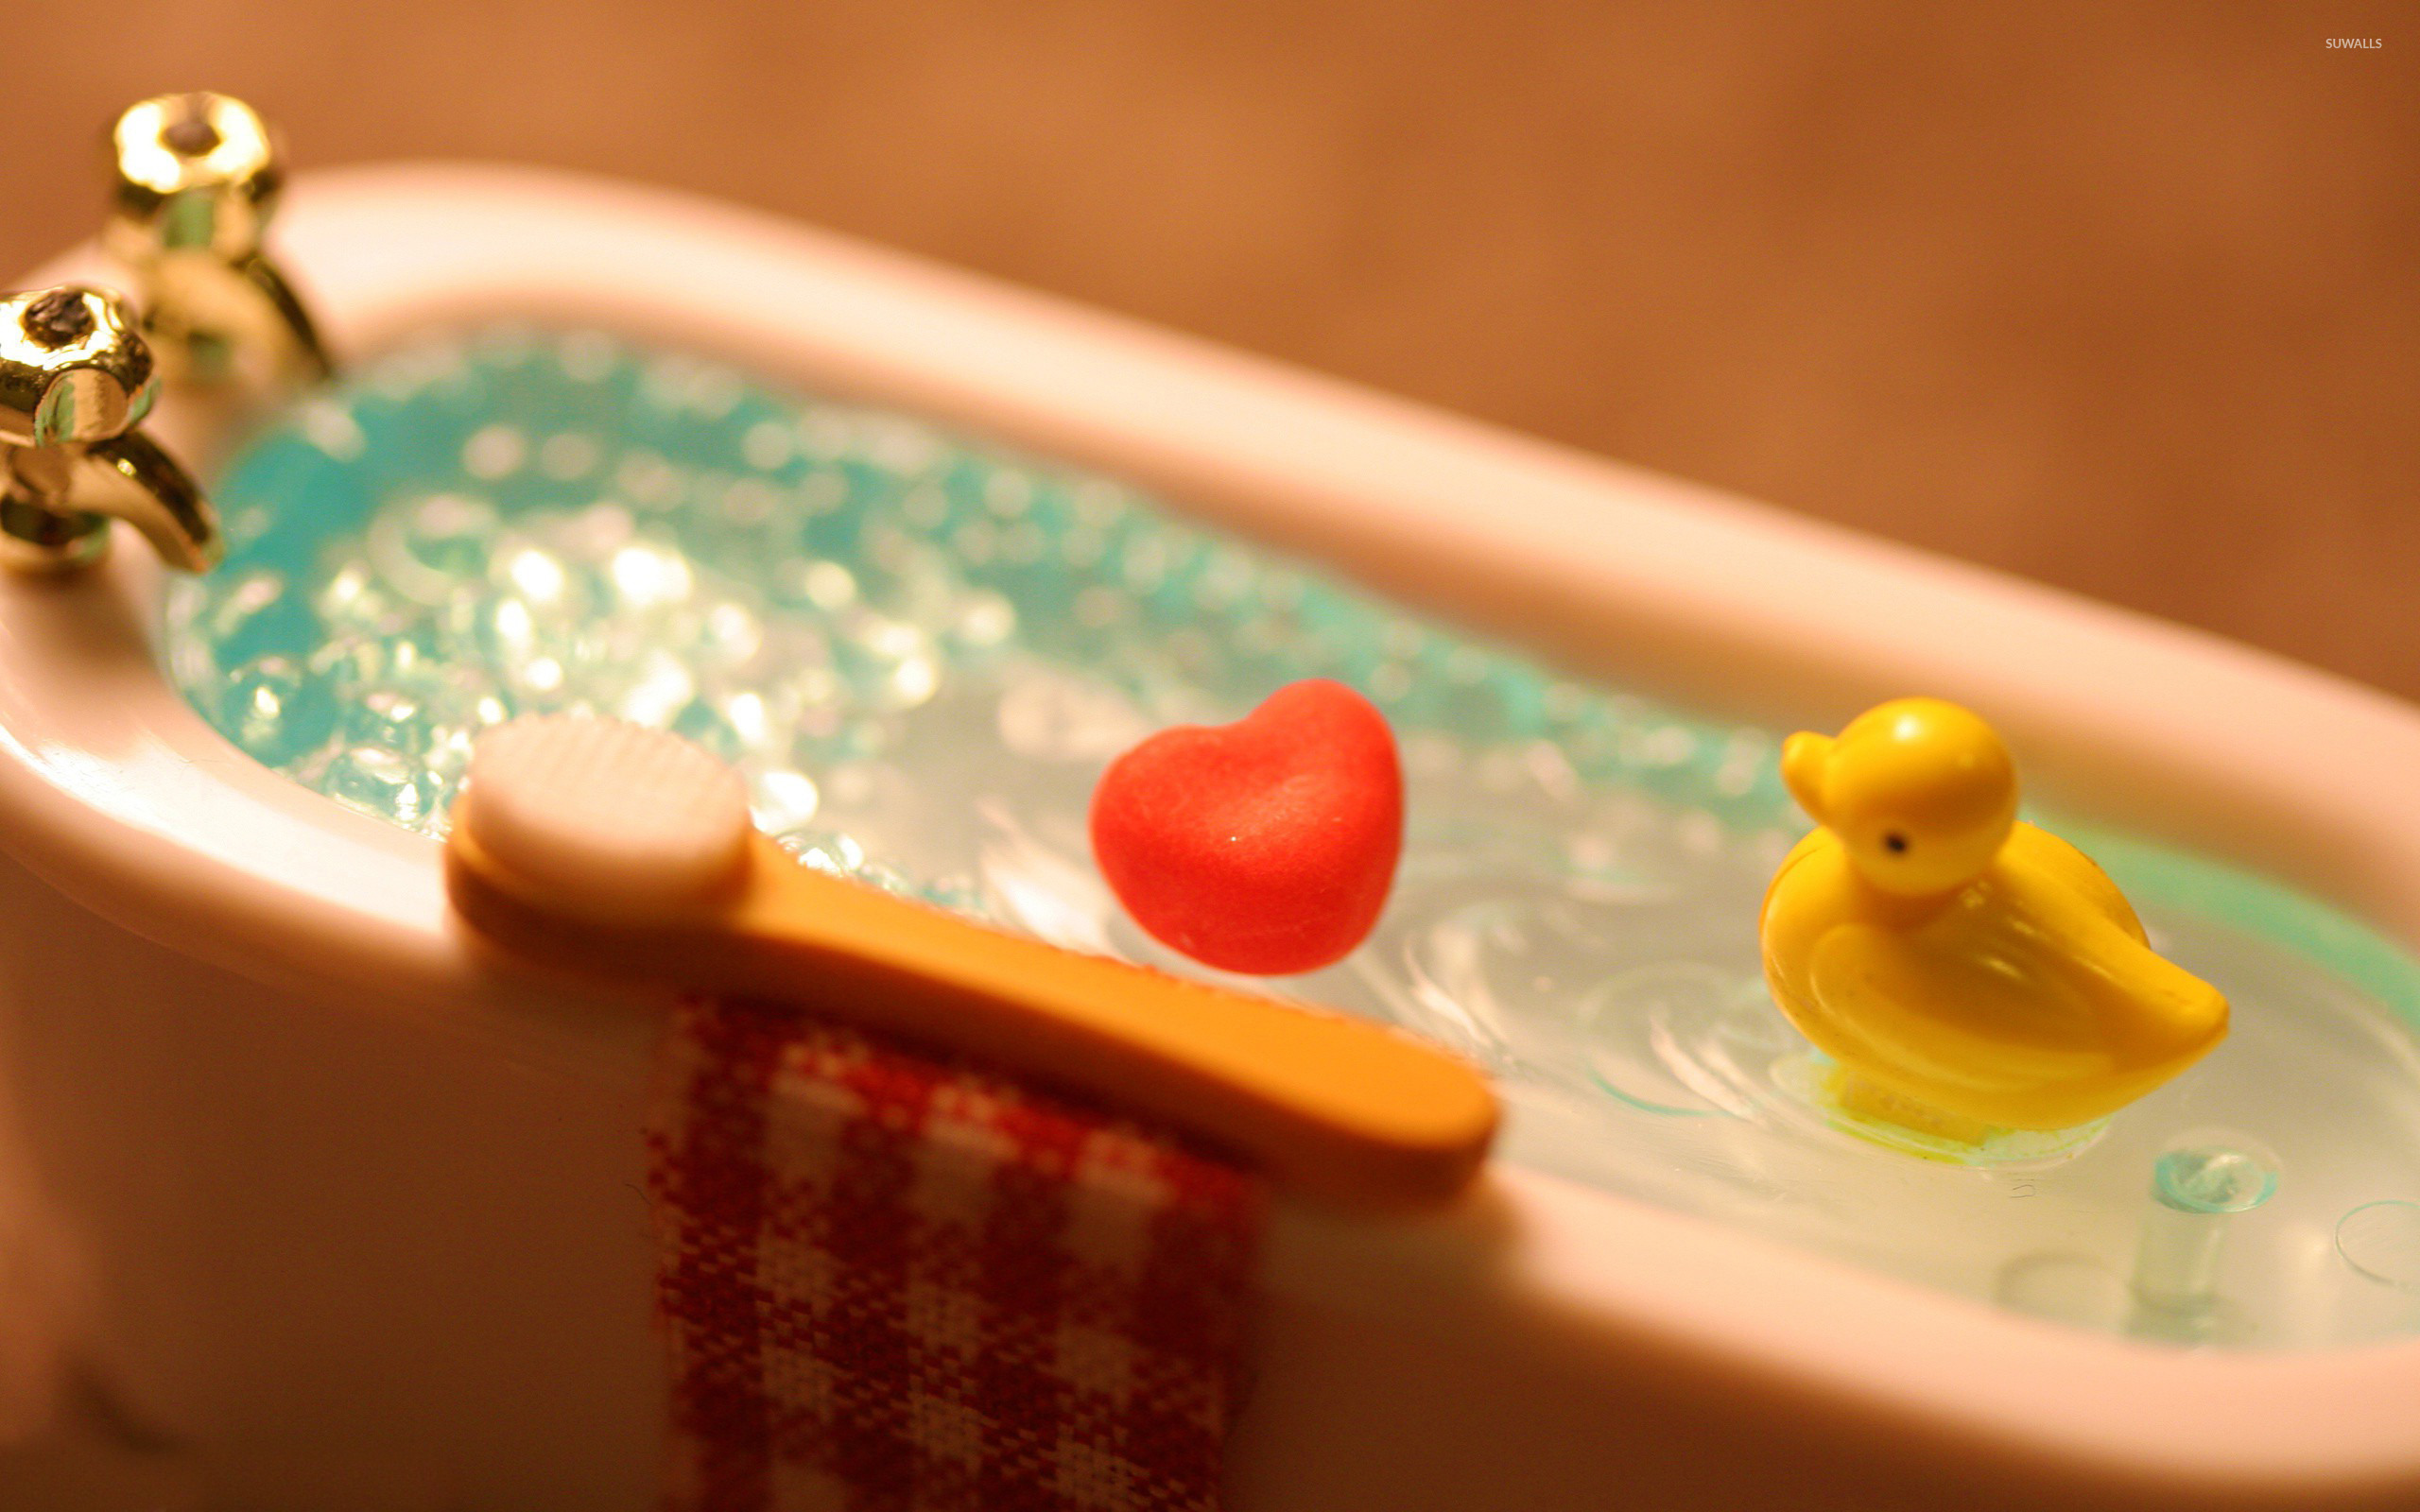 Rubber ducky taking a bath wallpaper - Funny wallpapers - #21152